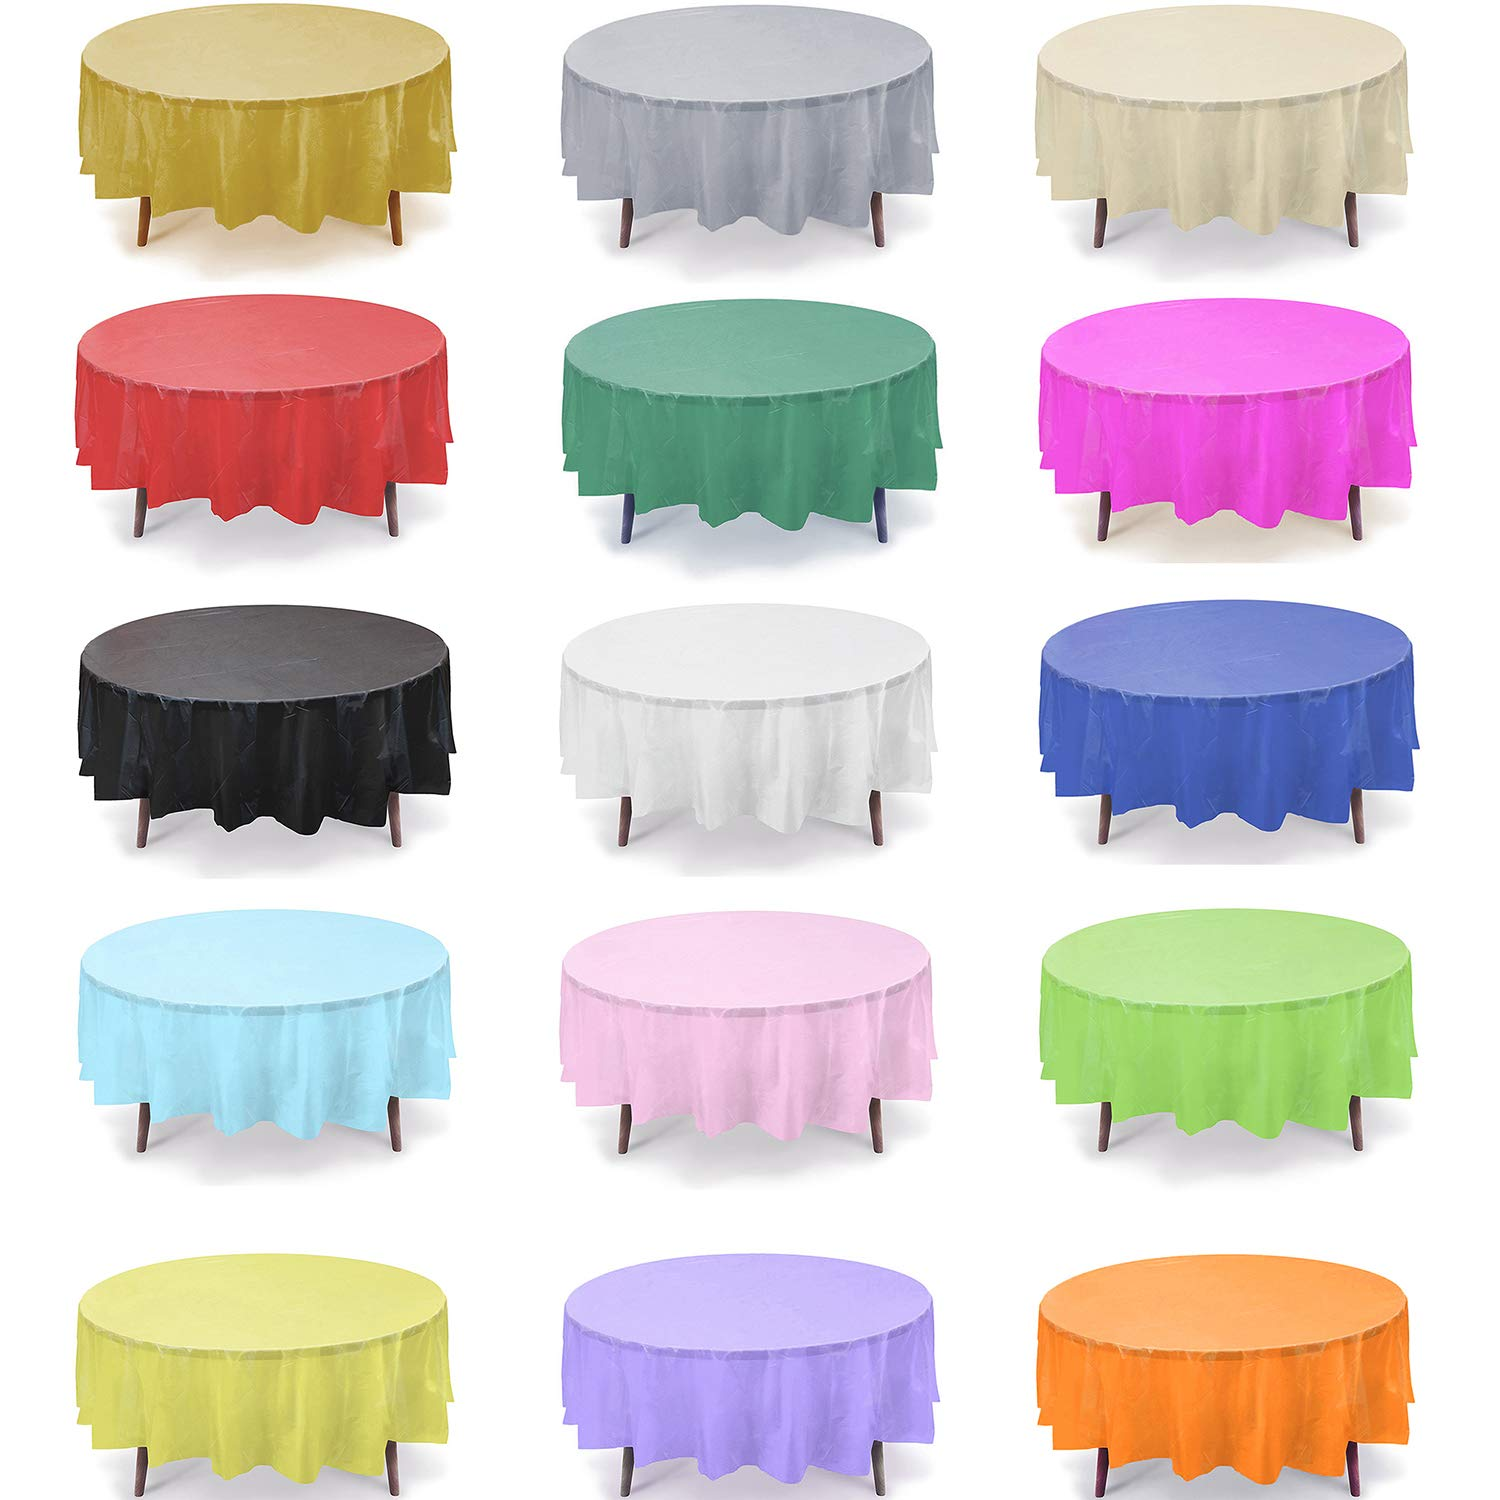 12 Pack 84'' Round Plastic Table Cover, Plastic Table Cloth Reusable (PEVA) (Gold) by Gift Expressions